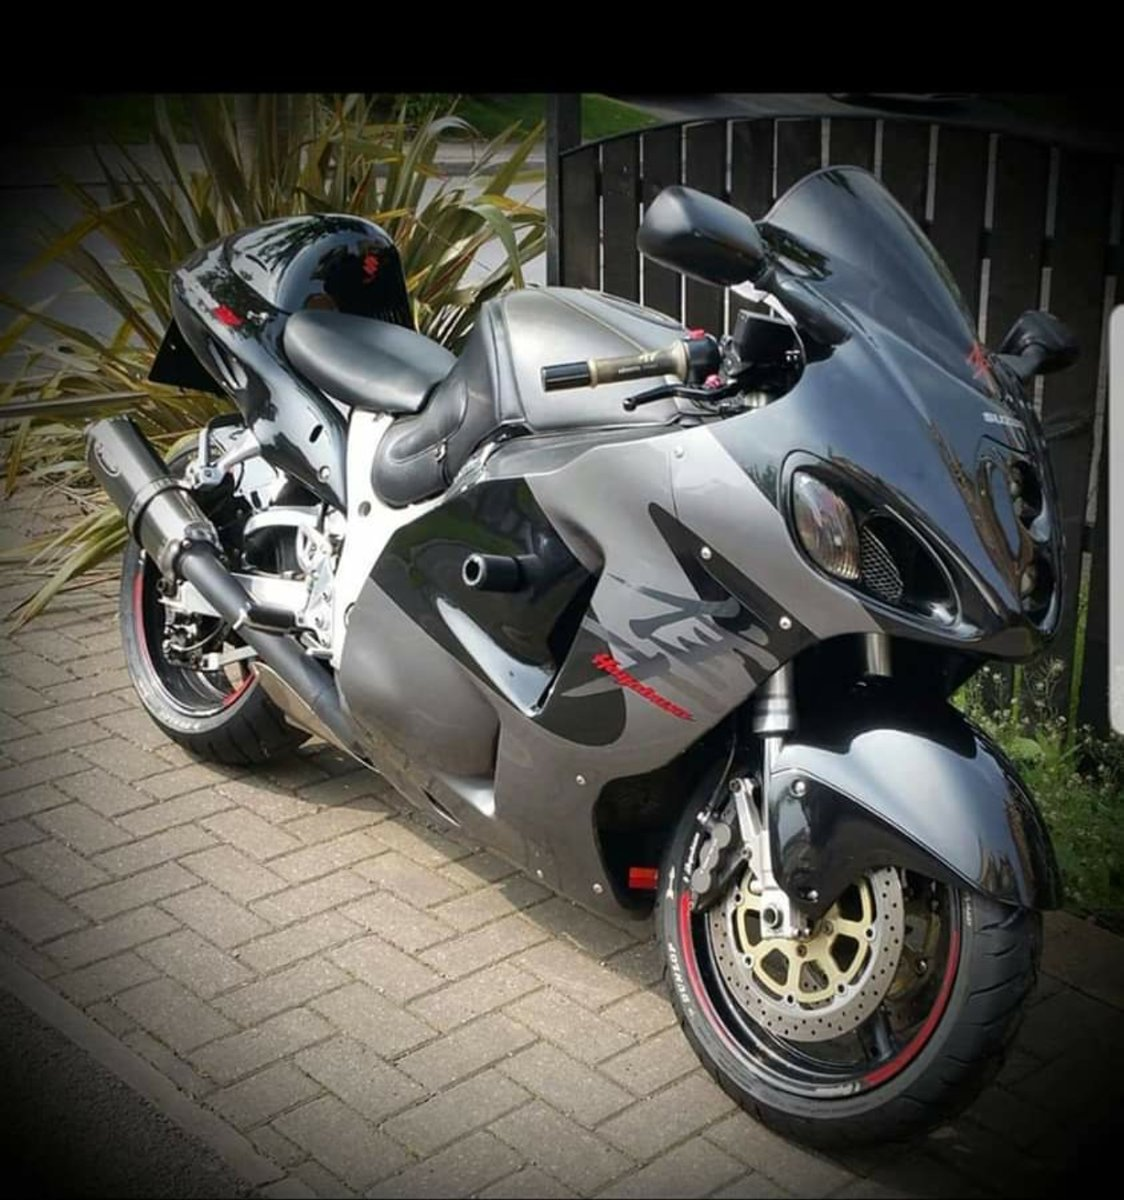 2000 Hayabusa RY 1st Generation unrestricted model For Sale (picture 1 of 3)